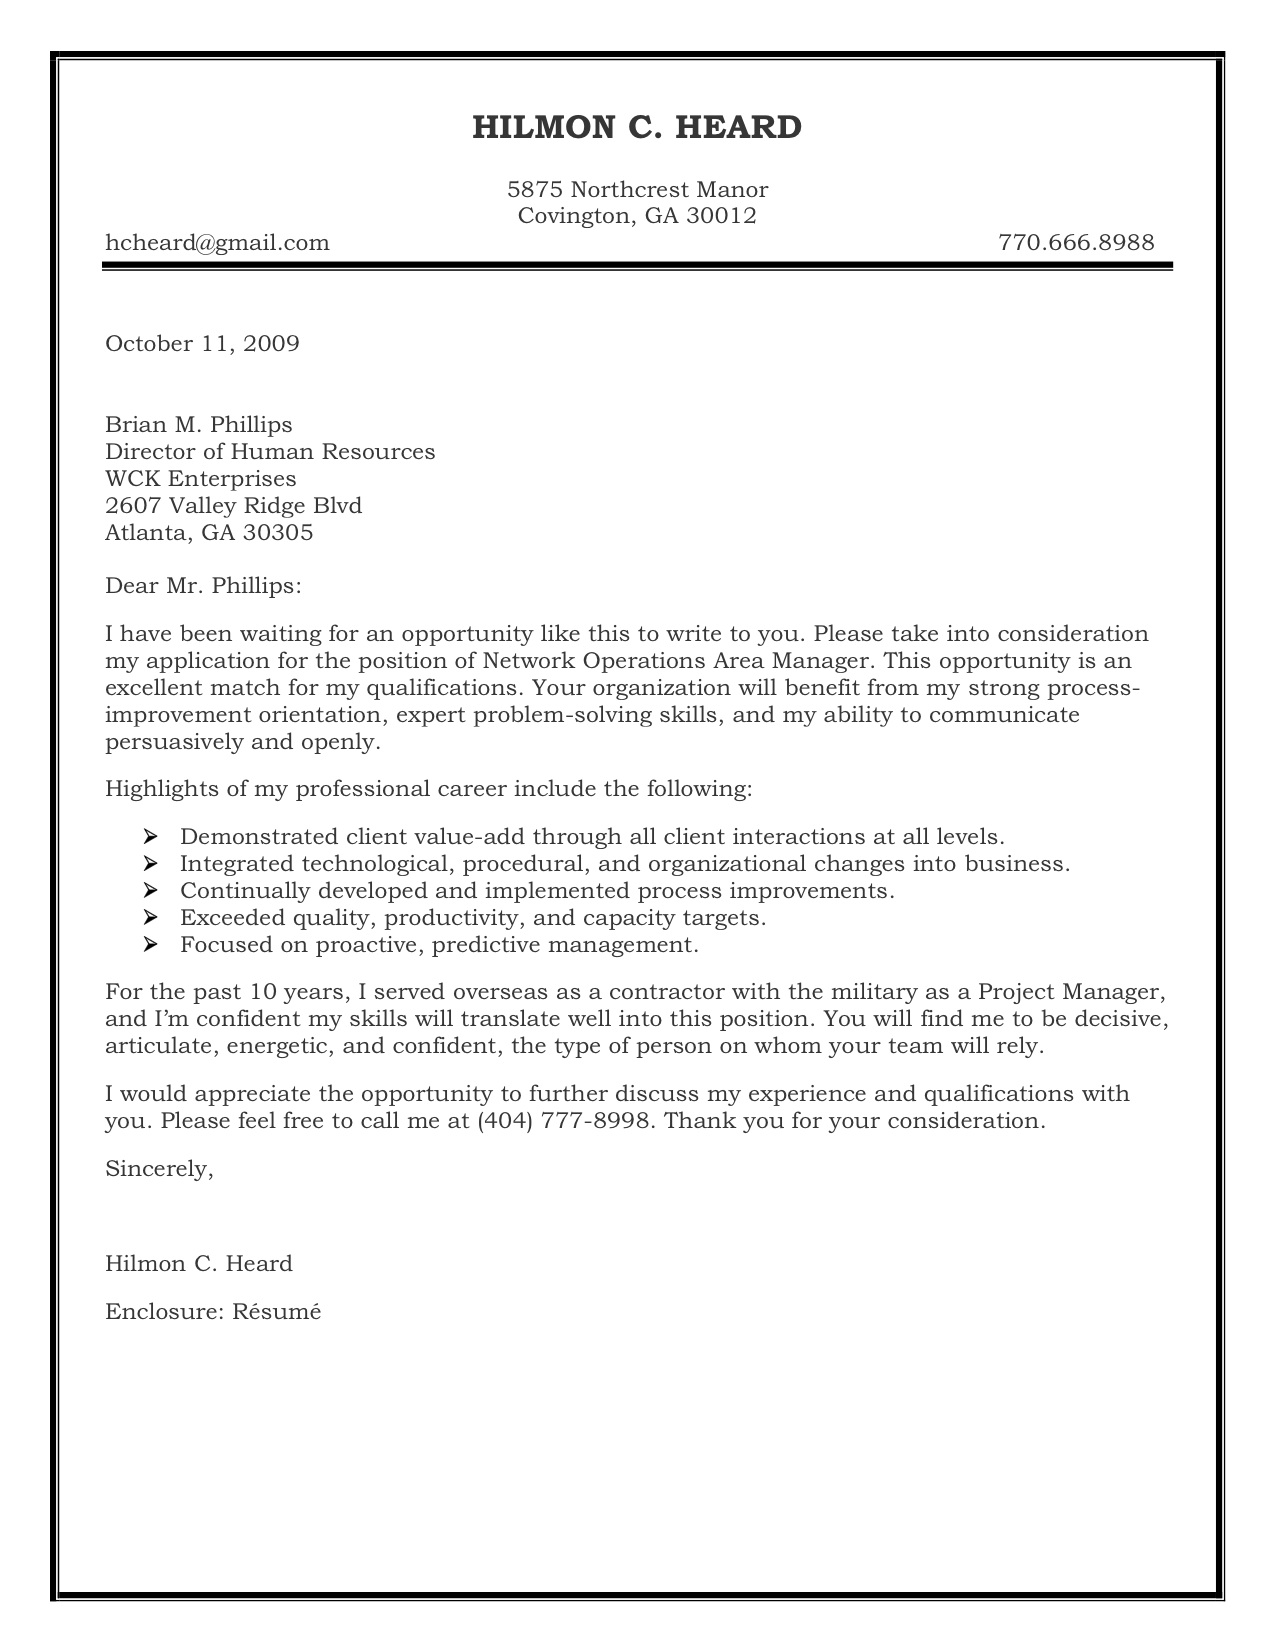 customer service adviser cover letter cover letter examples employment advisor cover letter employment hendricks county solid - Resume Of Cover Letter Example